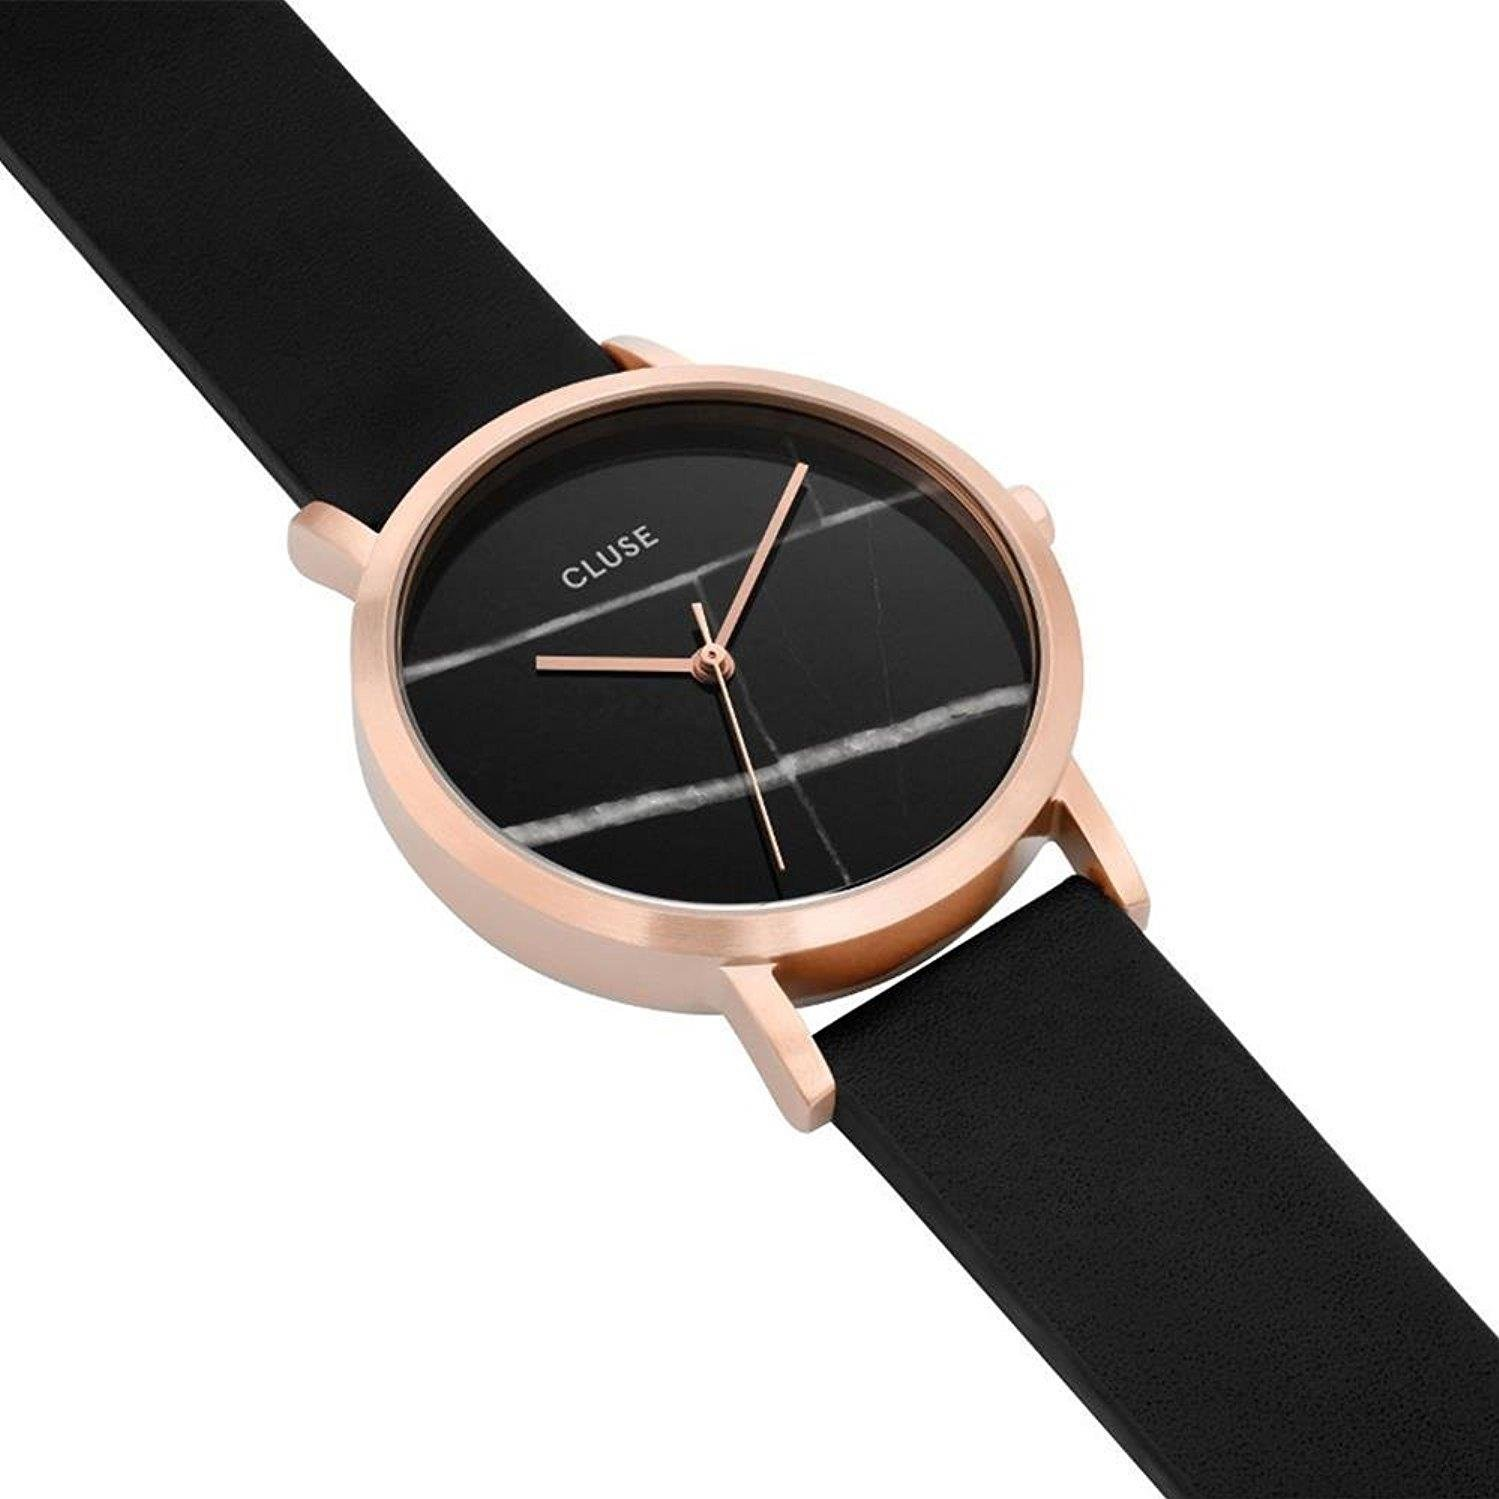 ... La Roche Petite Rose Gold Black Marble Black CL40104 Womens Watch 33mm Leather Strap Minimalistic Design Casual Dress Japanese Quartz: Cluse: Watches